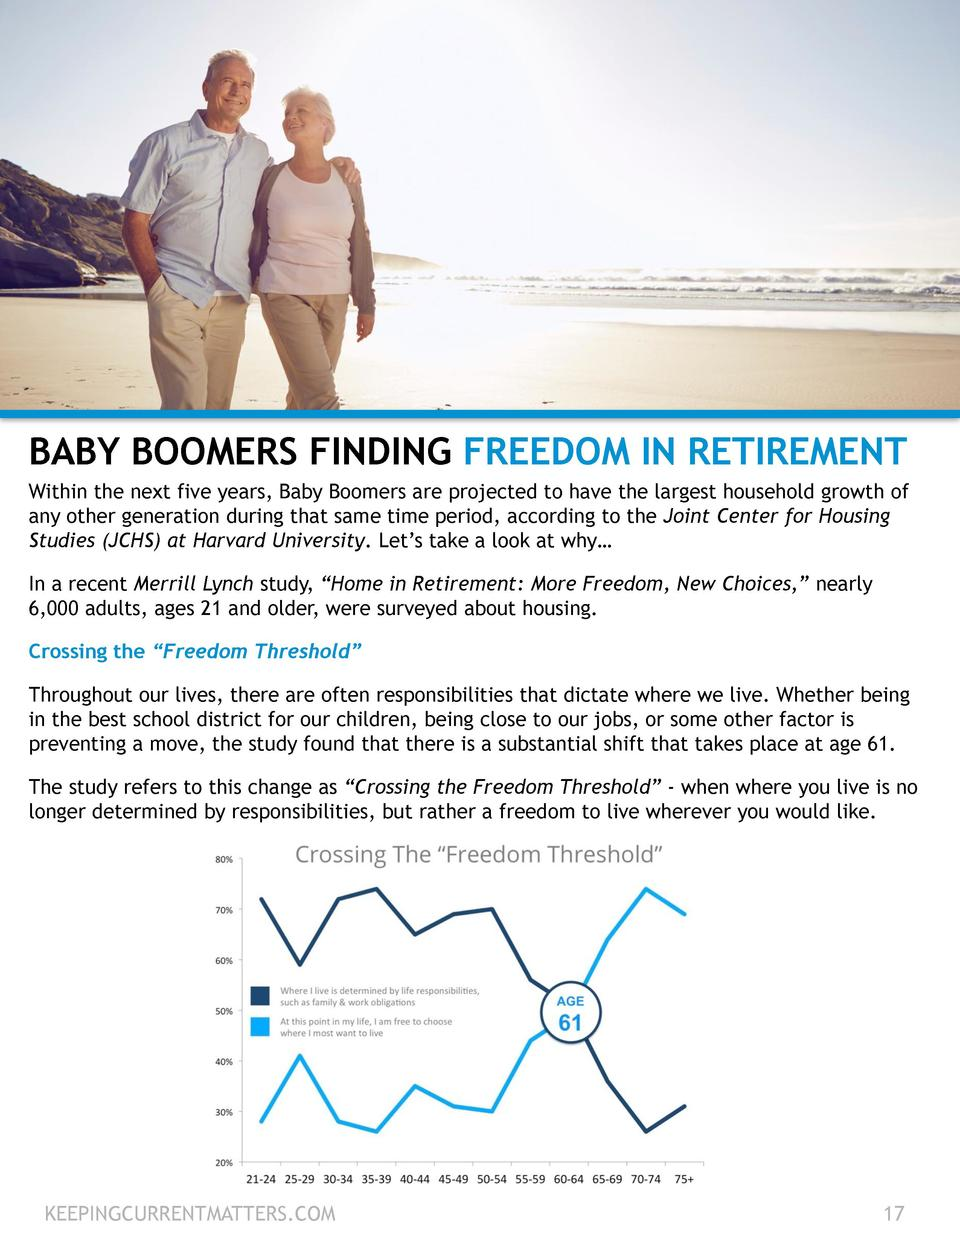 BABY BOOMERS FINDING FREEDOM IN RETIREMENT Within the next five years, Baby Boomers are projected to have the largest hous...